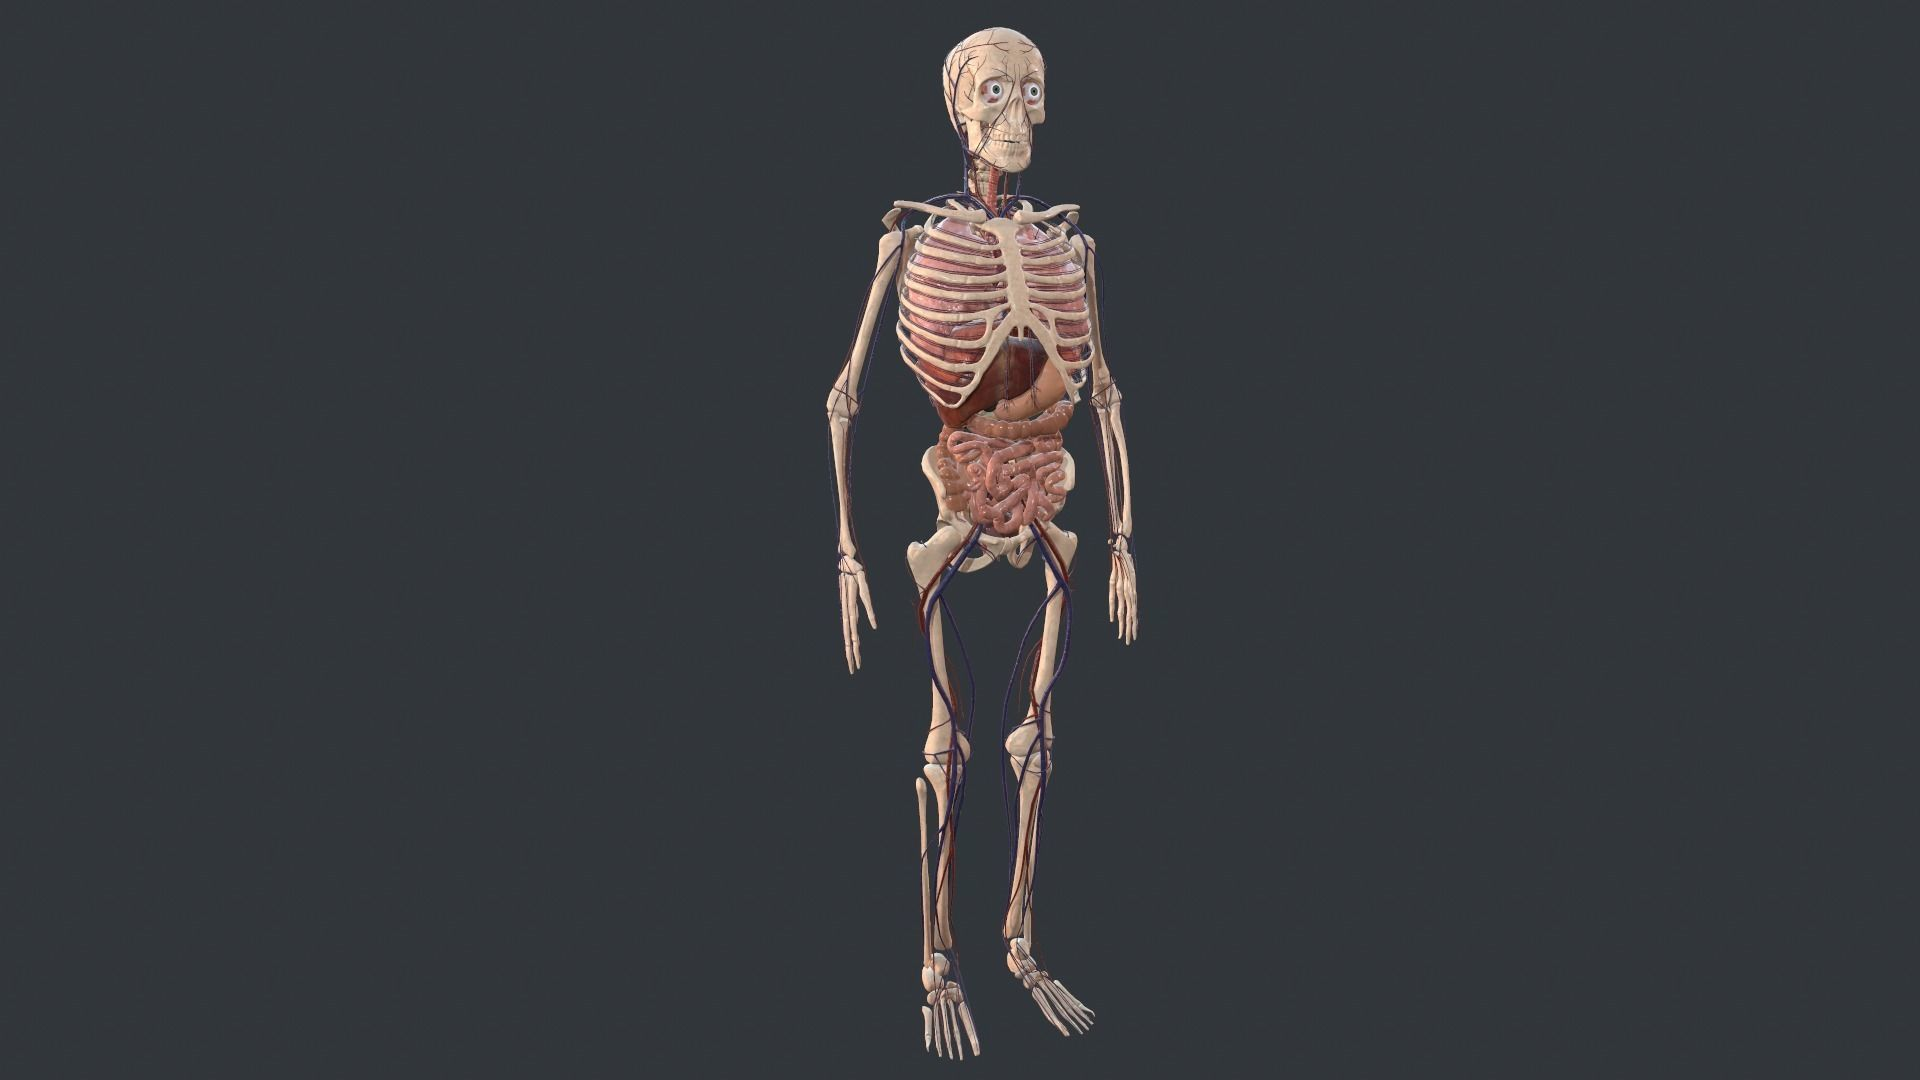 Animated Human Body with circulatory system